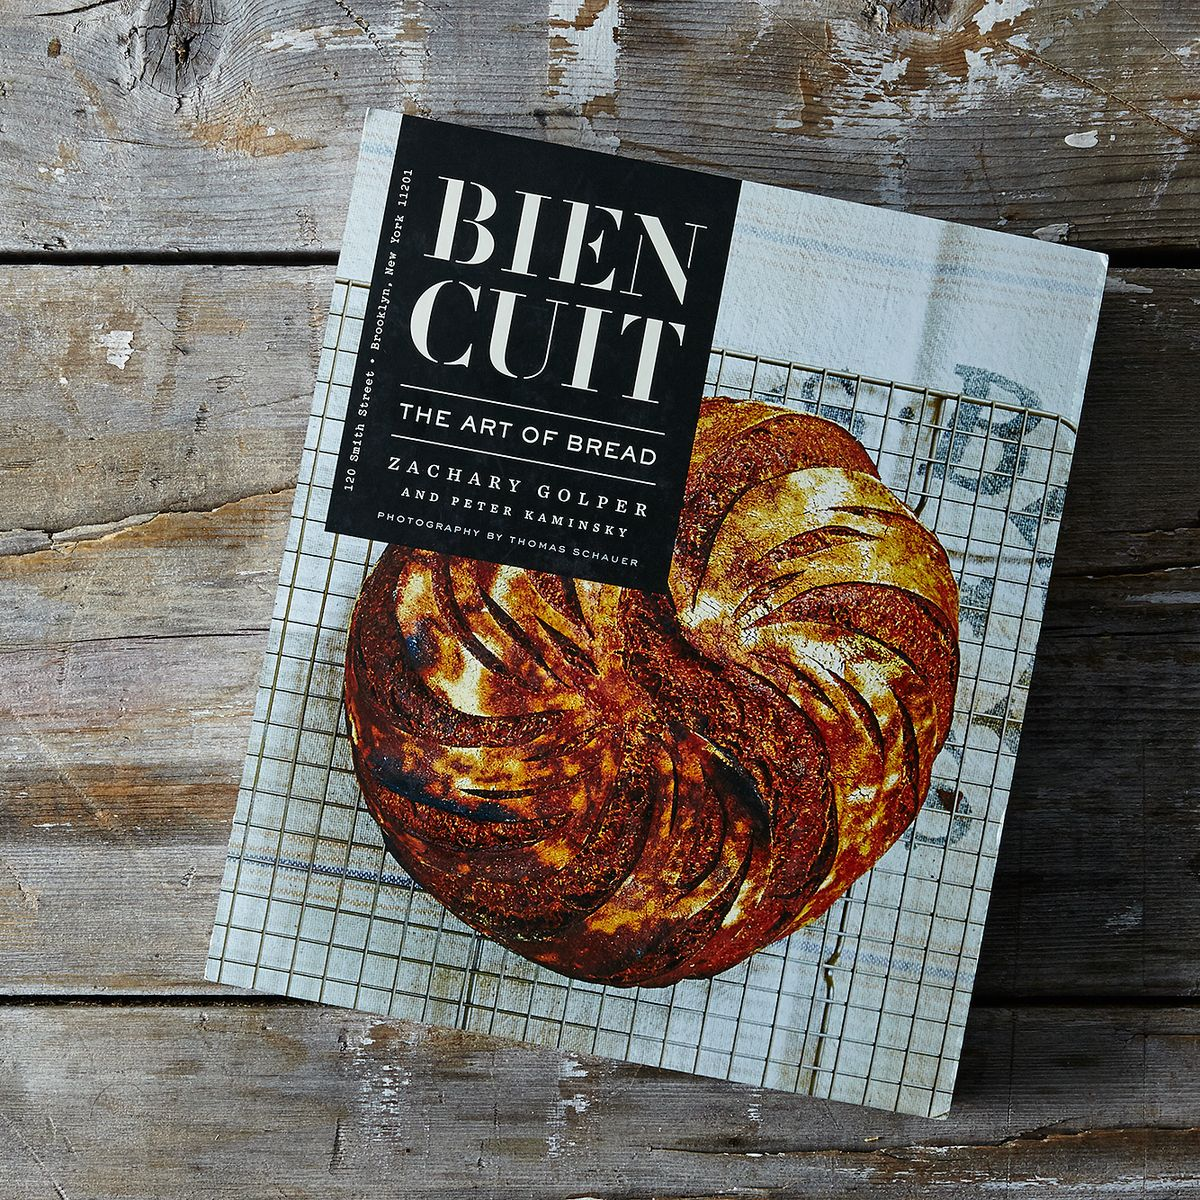 cooking from bien cuit: there go your weekends